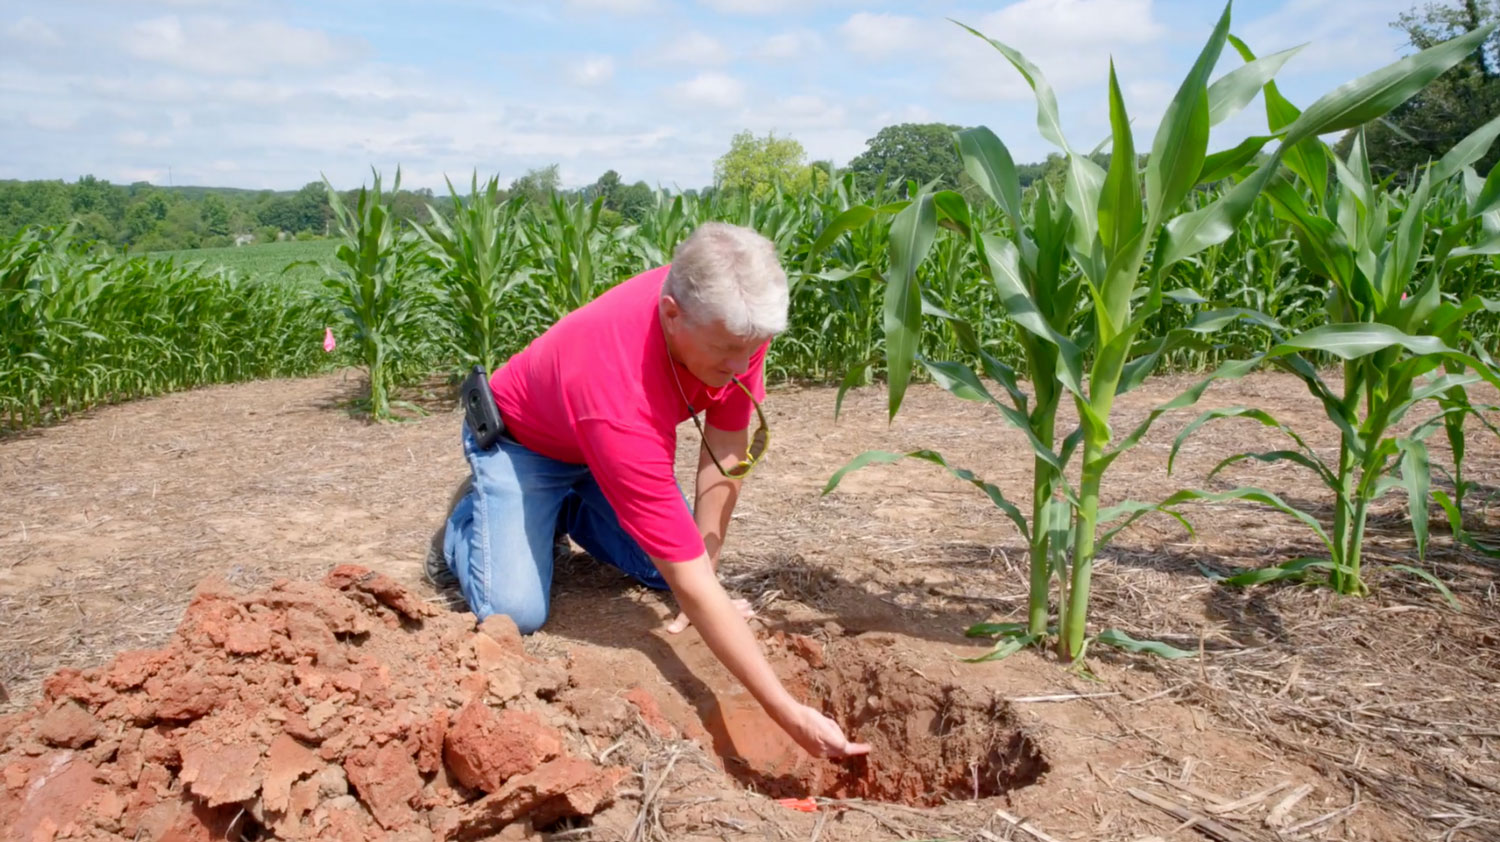 Man in a red shirt kneeling on the ground next to a hole